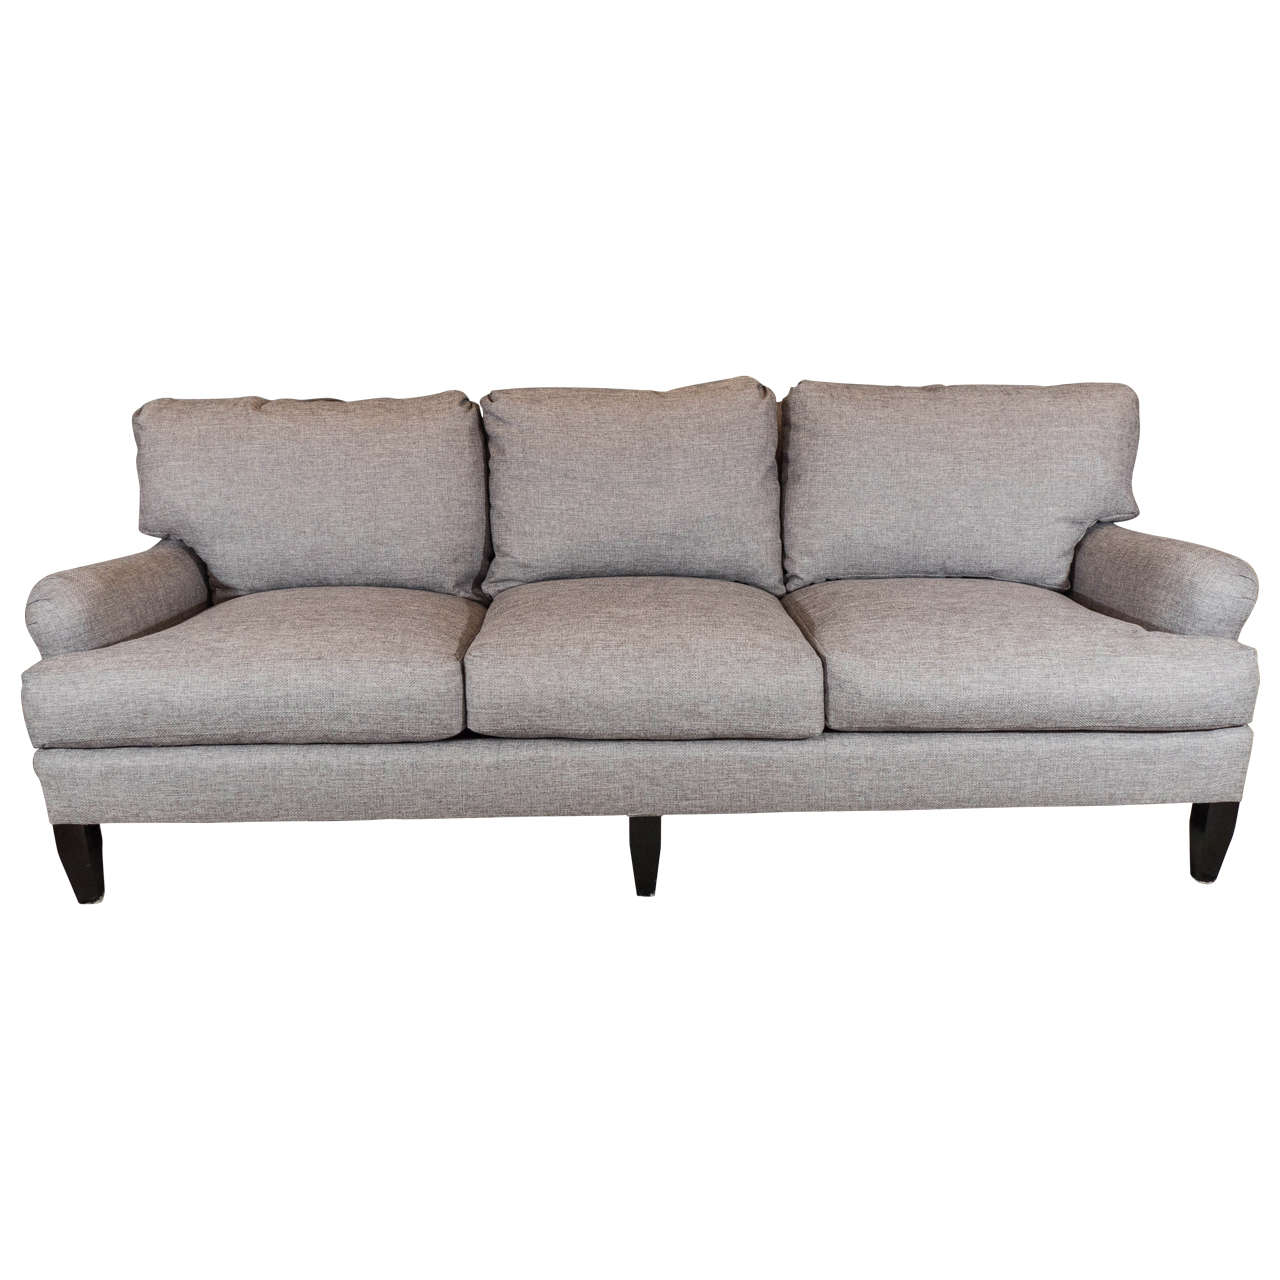 Late 20th Century English Arm Sofa in Grey Linen and Down Cushions For Sale